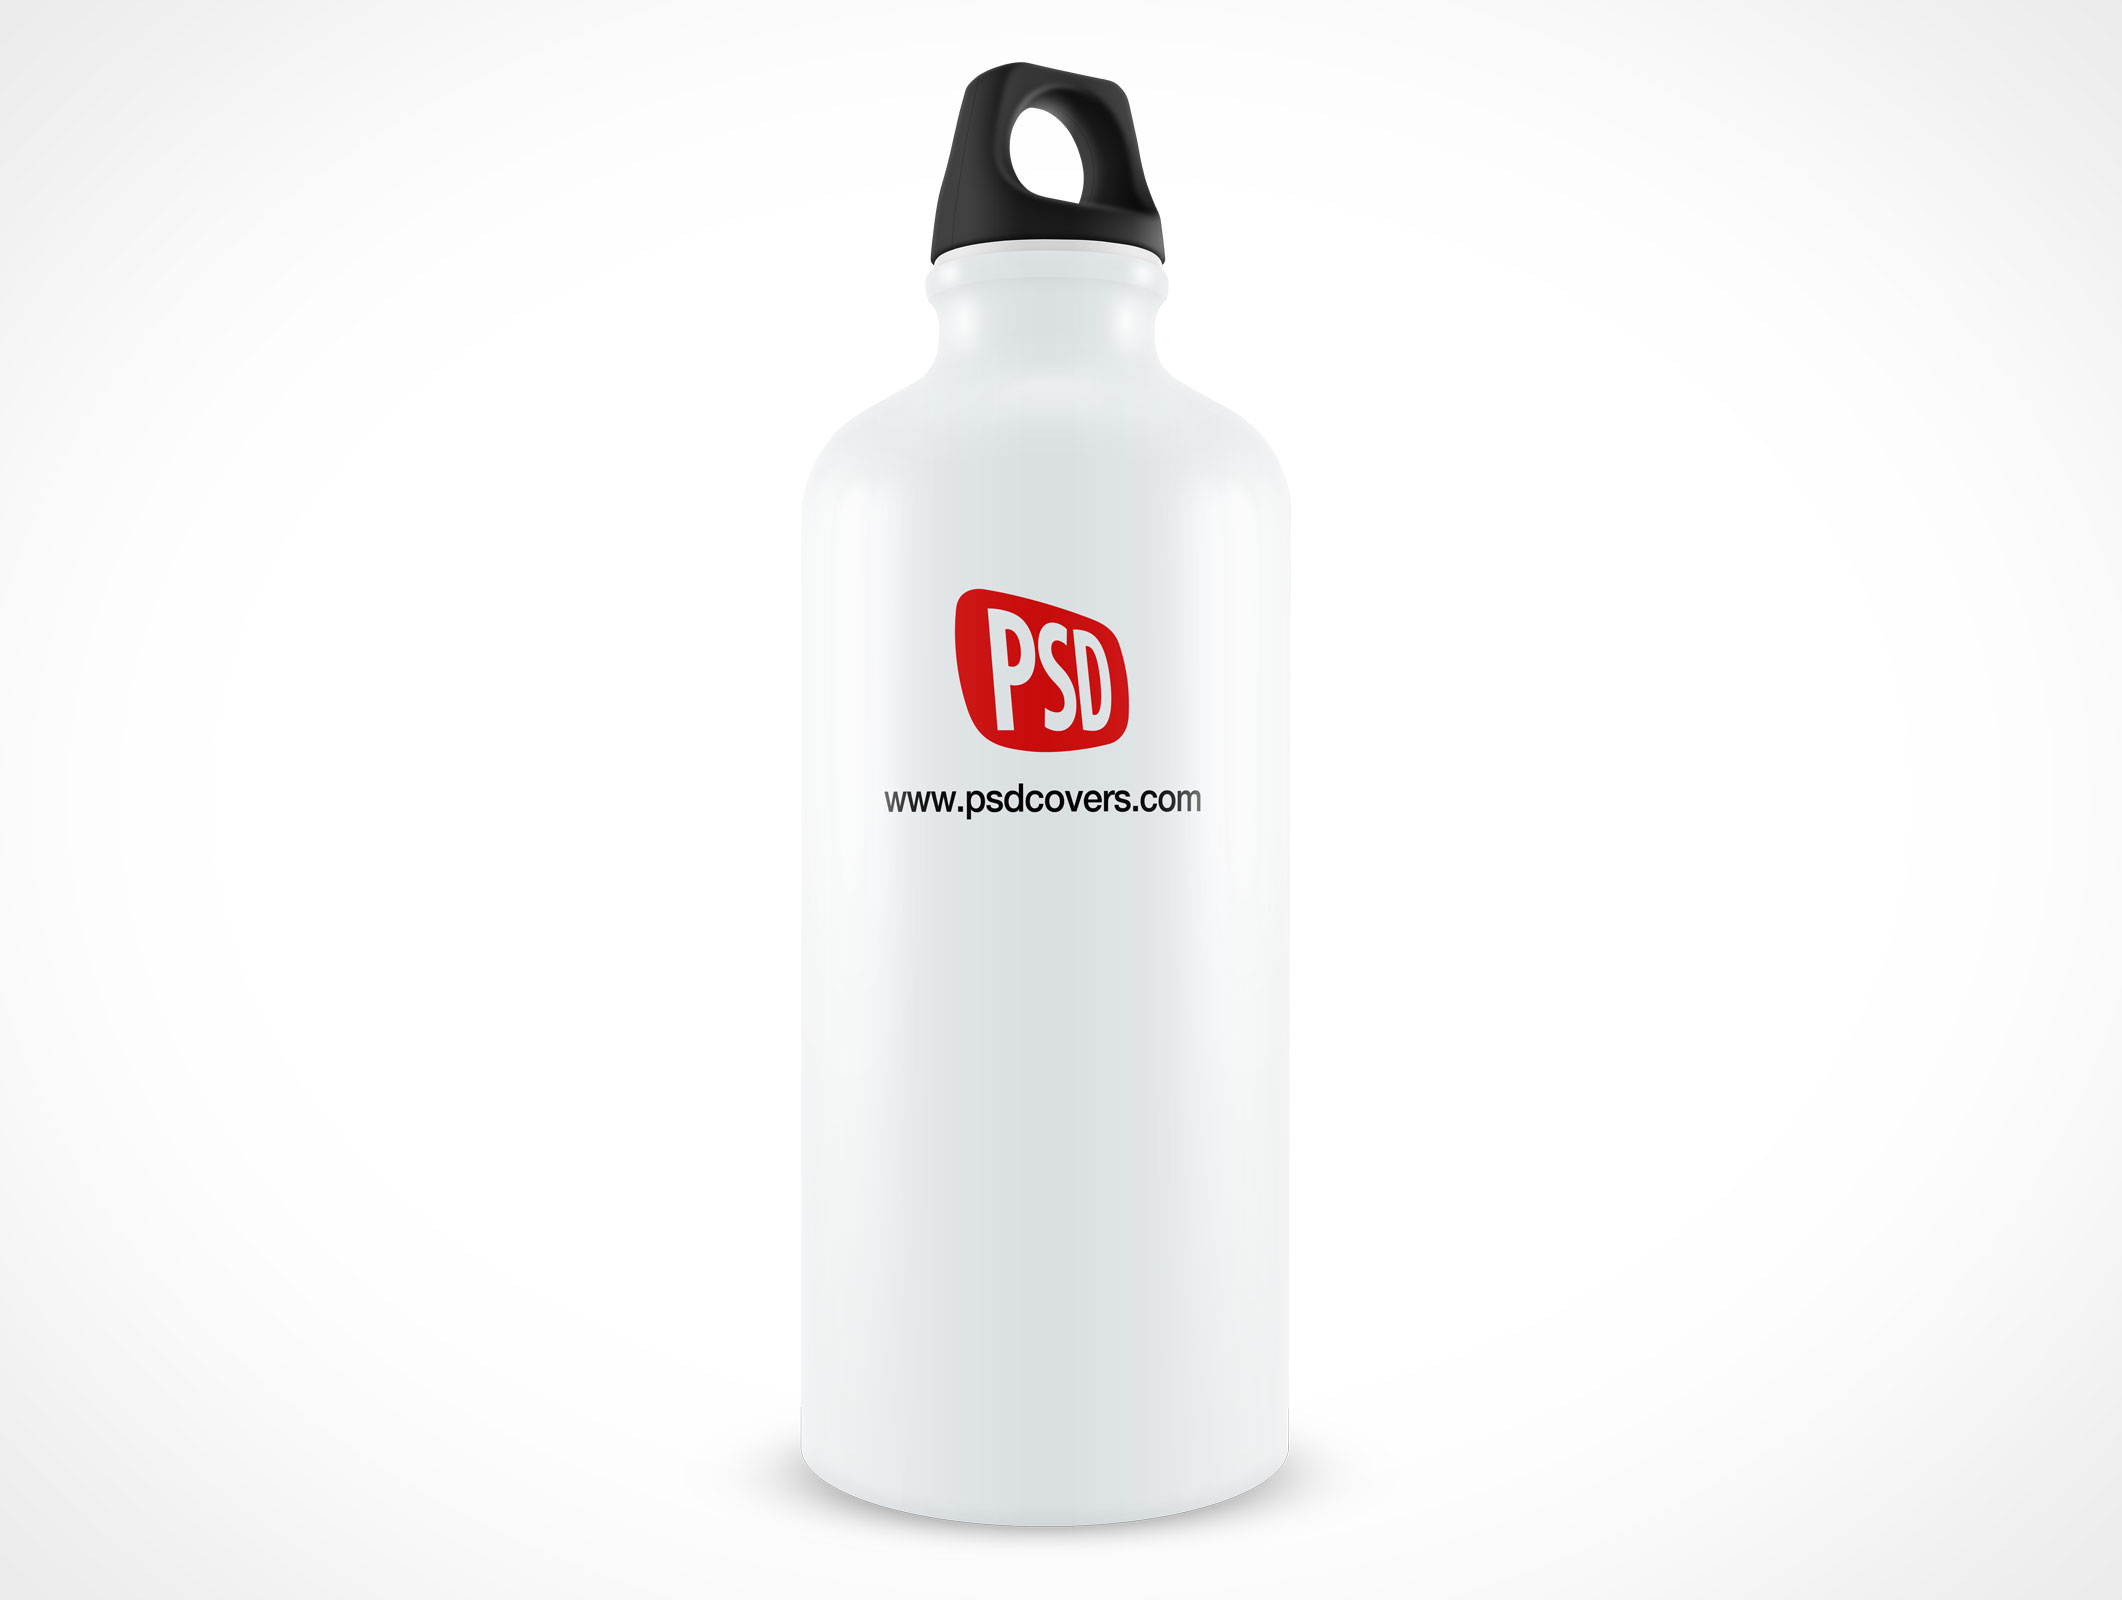 Mockup Aluminium Sports Water Bottle PSD Mockup Label